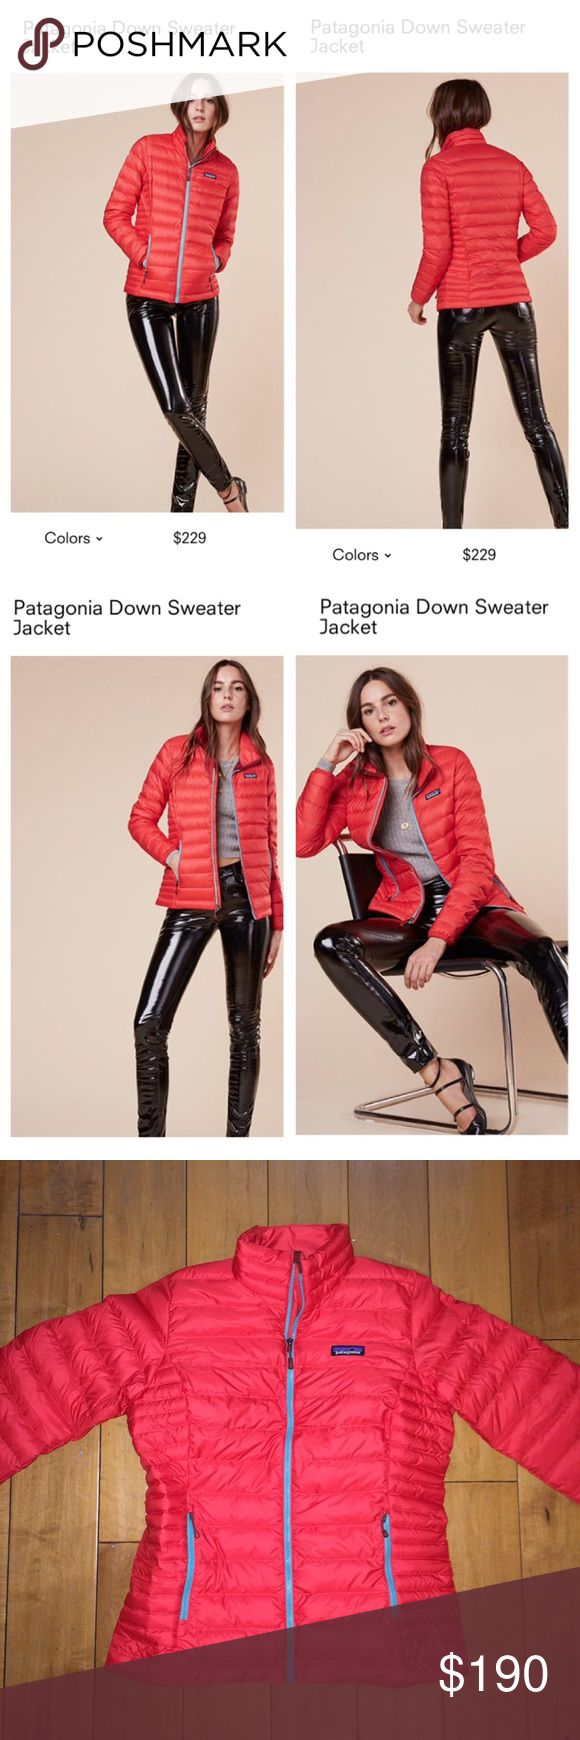 Brand New Patagonia Down Sweater Jacket Brand New Patagonia Down Sweater Jacket, NWT size M  Store price $229  #patagonia #patagoniajacket #patagoniadownsweaterjacket #jacket #sweaterjacket #reformation Patagonia Jackets & Coats Puffers